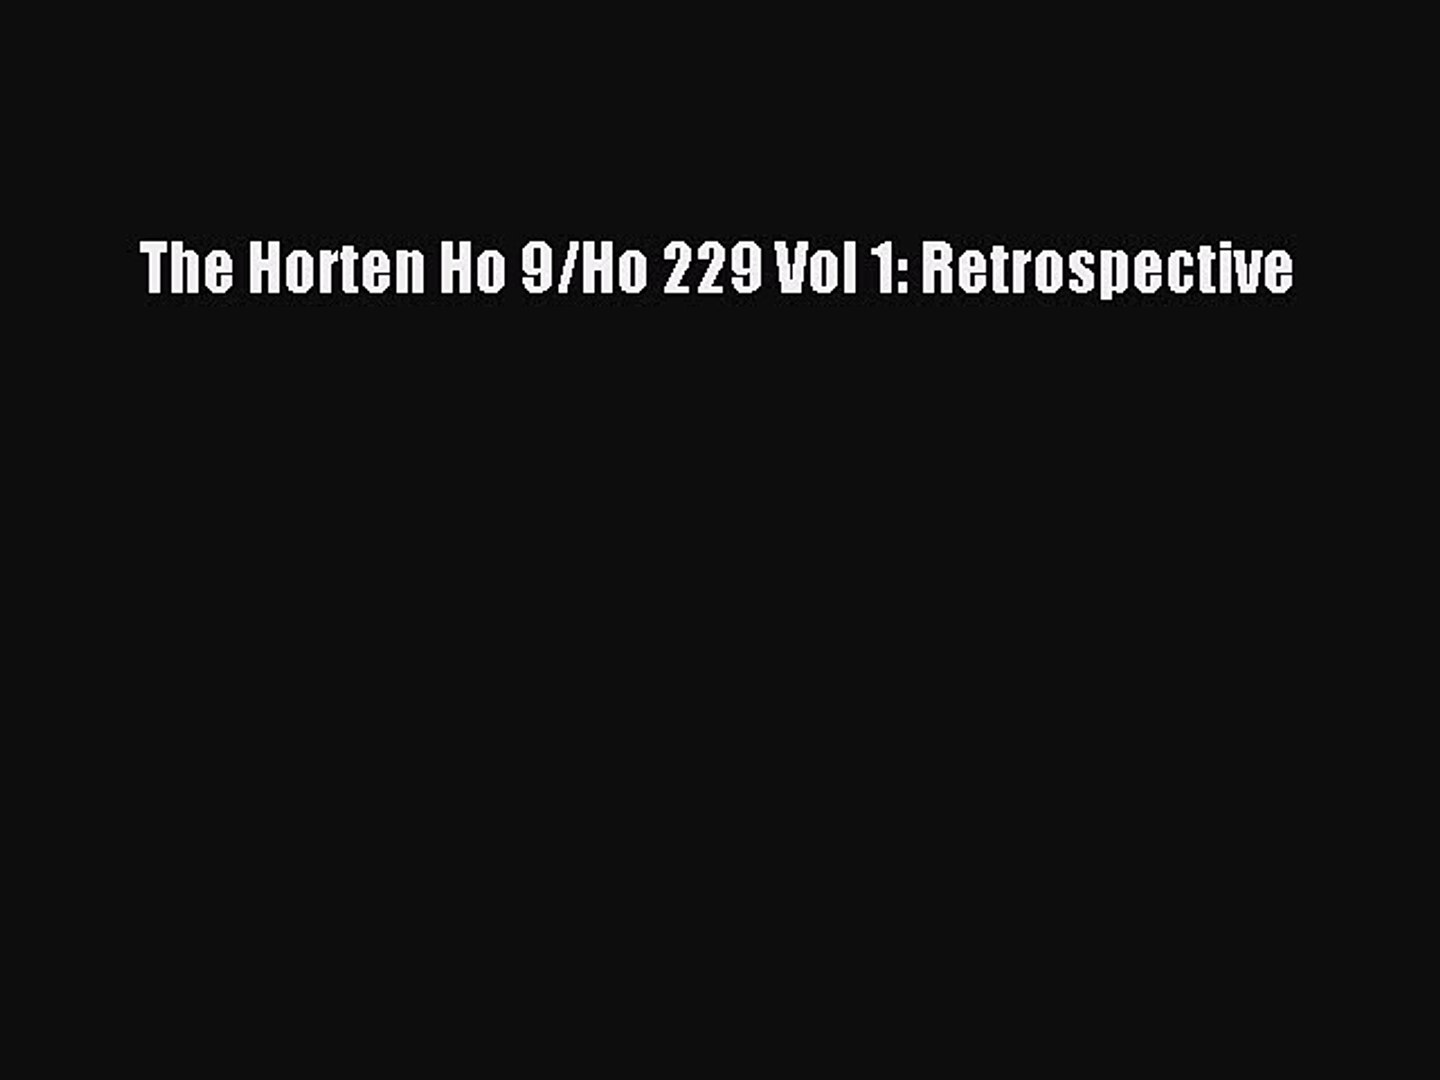 Read The Horten Ho 9/Ho 229 Vol 1: Retrospective Ebook Free